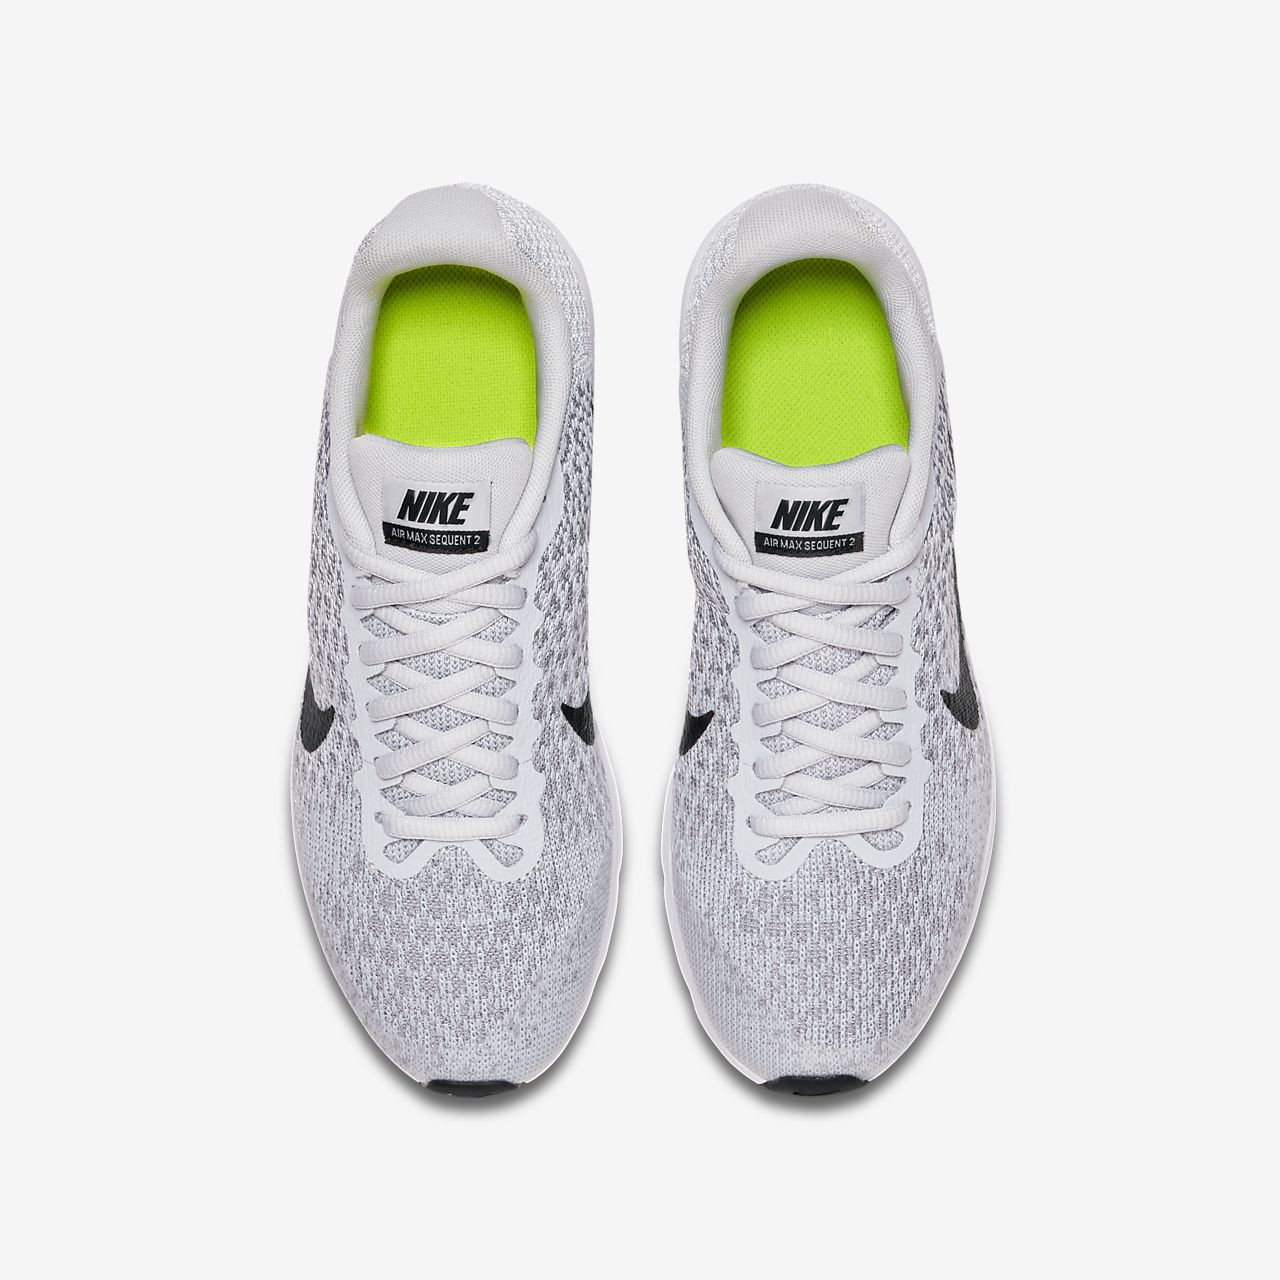 Nike Air Max Sequent 2 Sneakers Schoenen Lifestyle